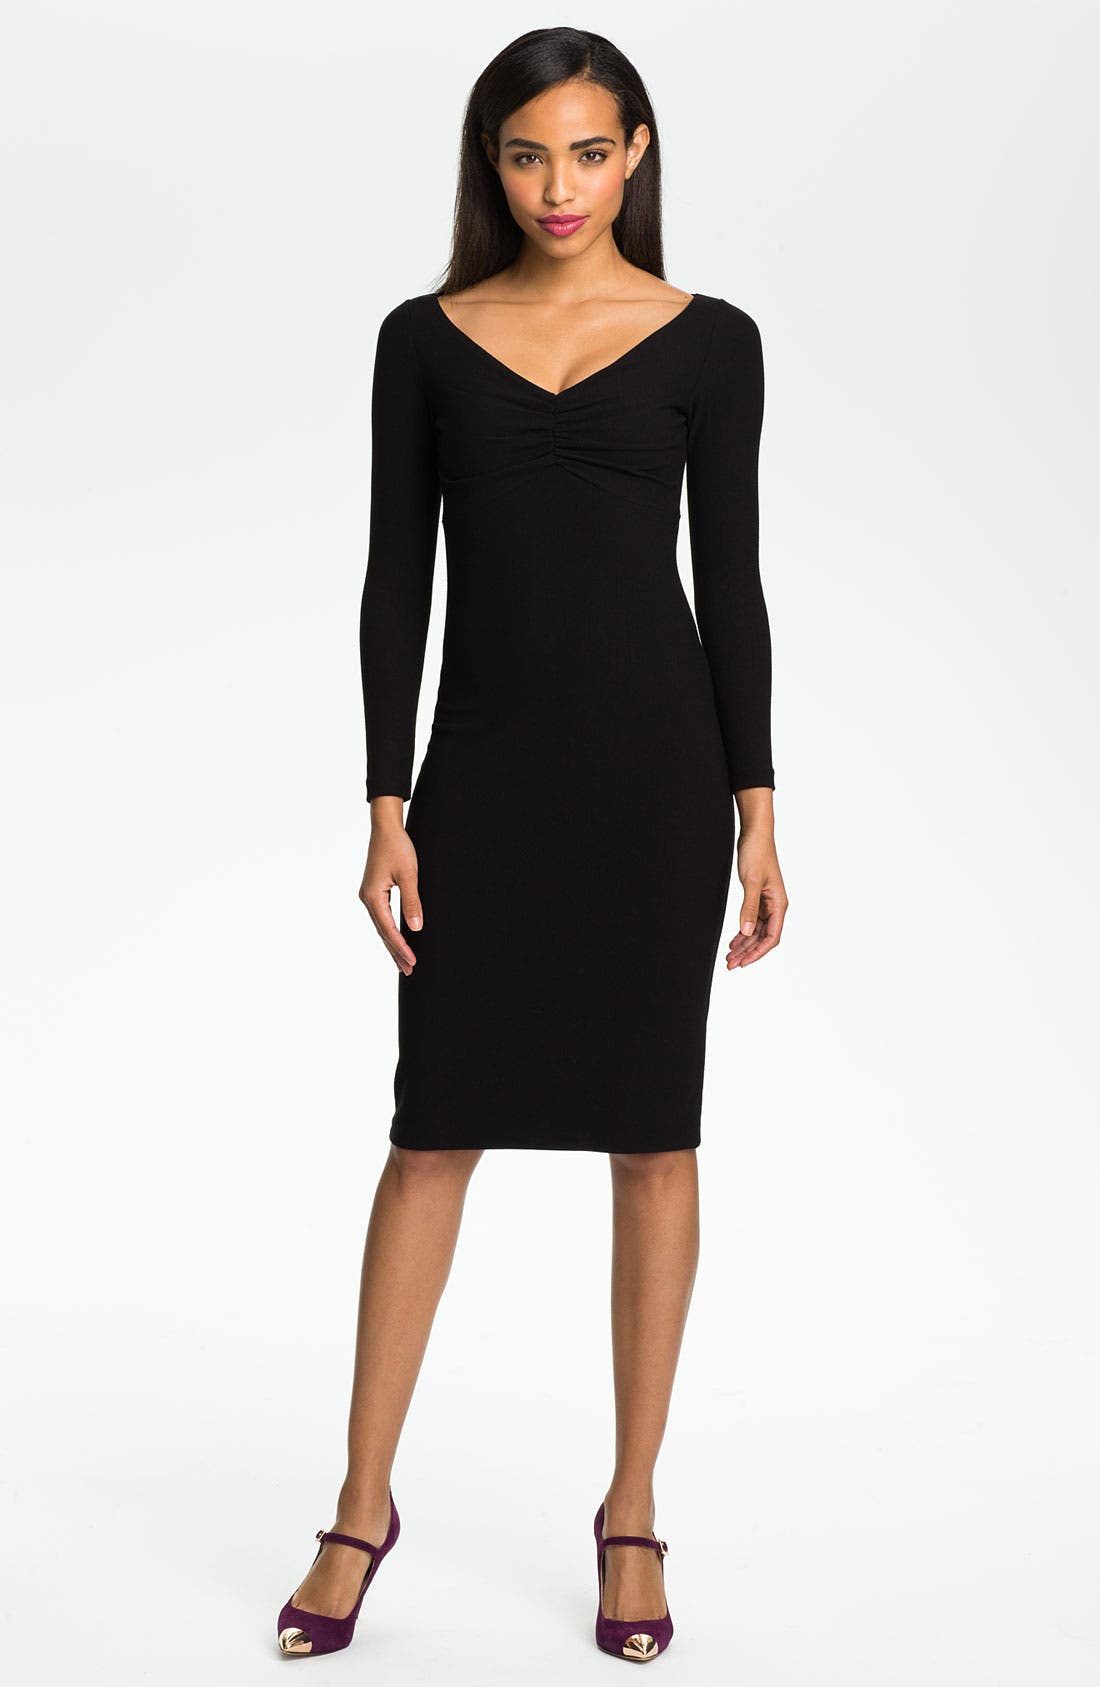 Alternate Image 1 Selected - La Petite Robe by Chiara Boni Ruched V-Neck Sheath Dress